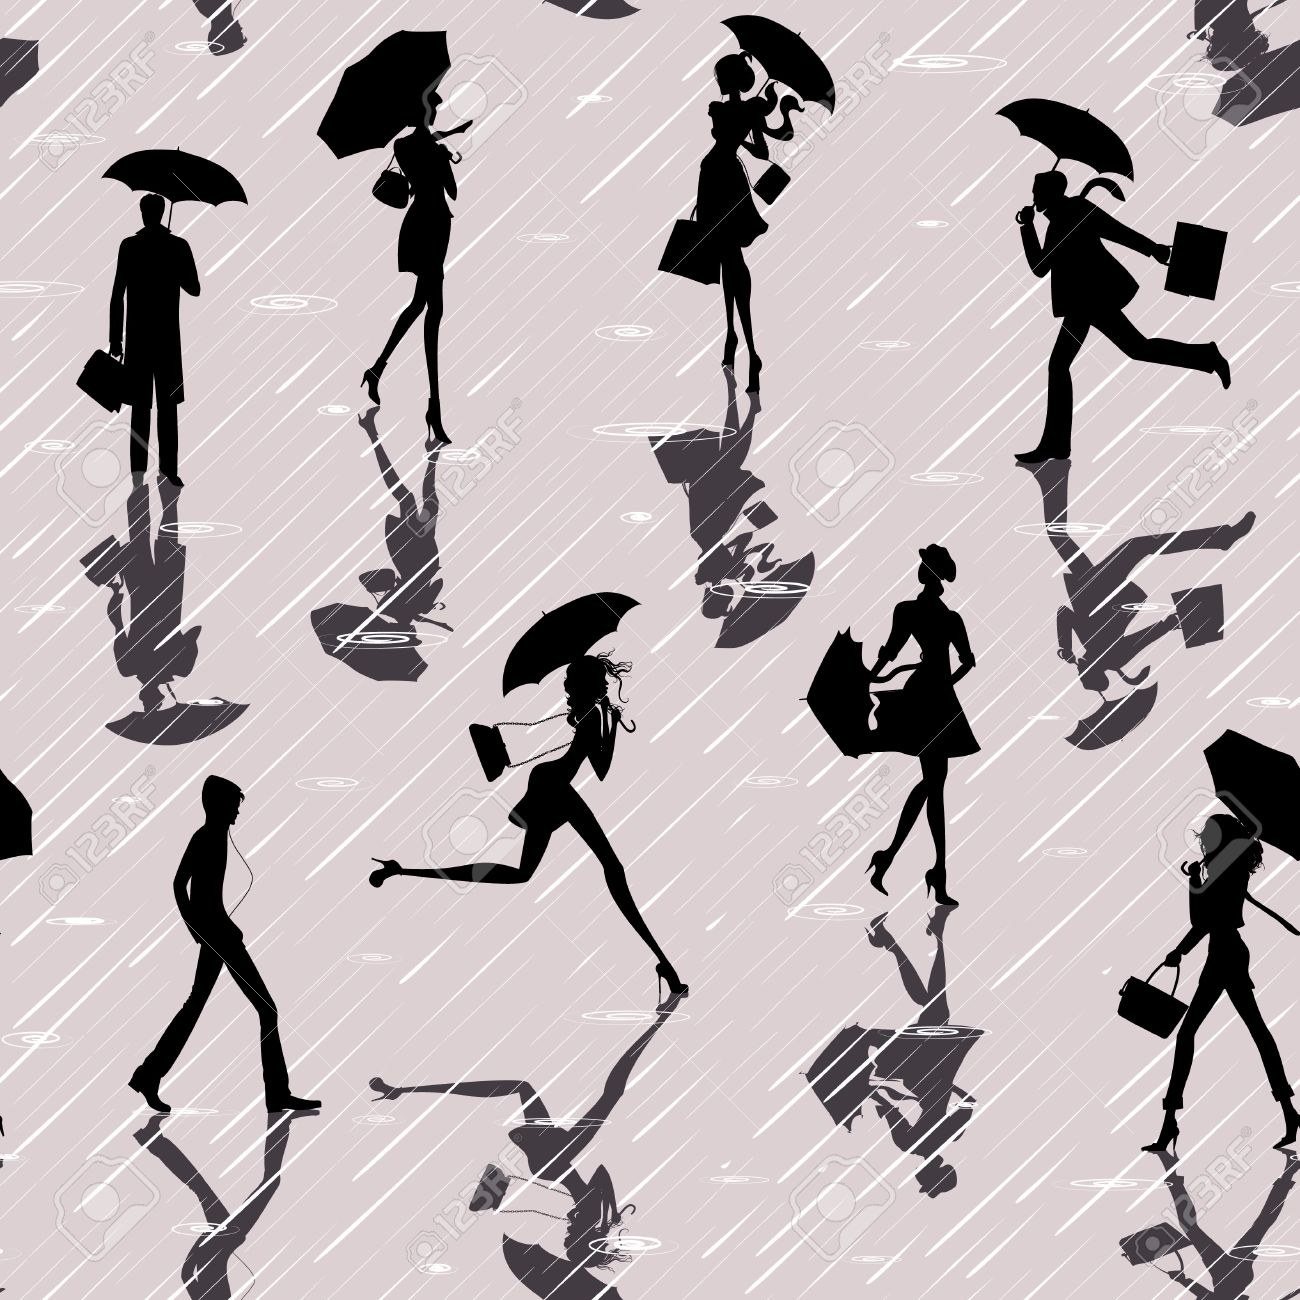 Seamless pattern with silhouettes of people with umbrellas in a rainy day Stock Vector - 10320270